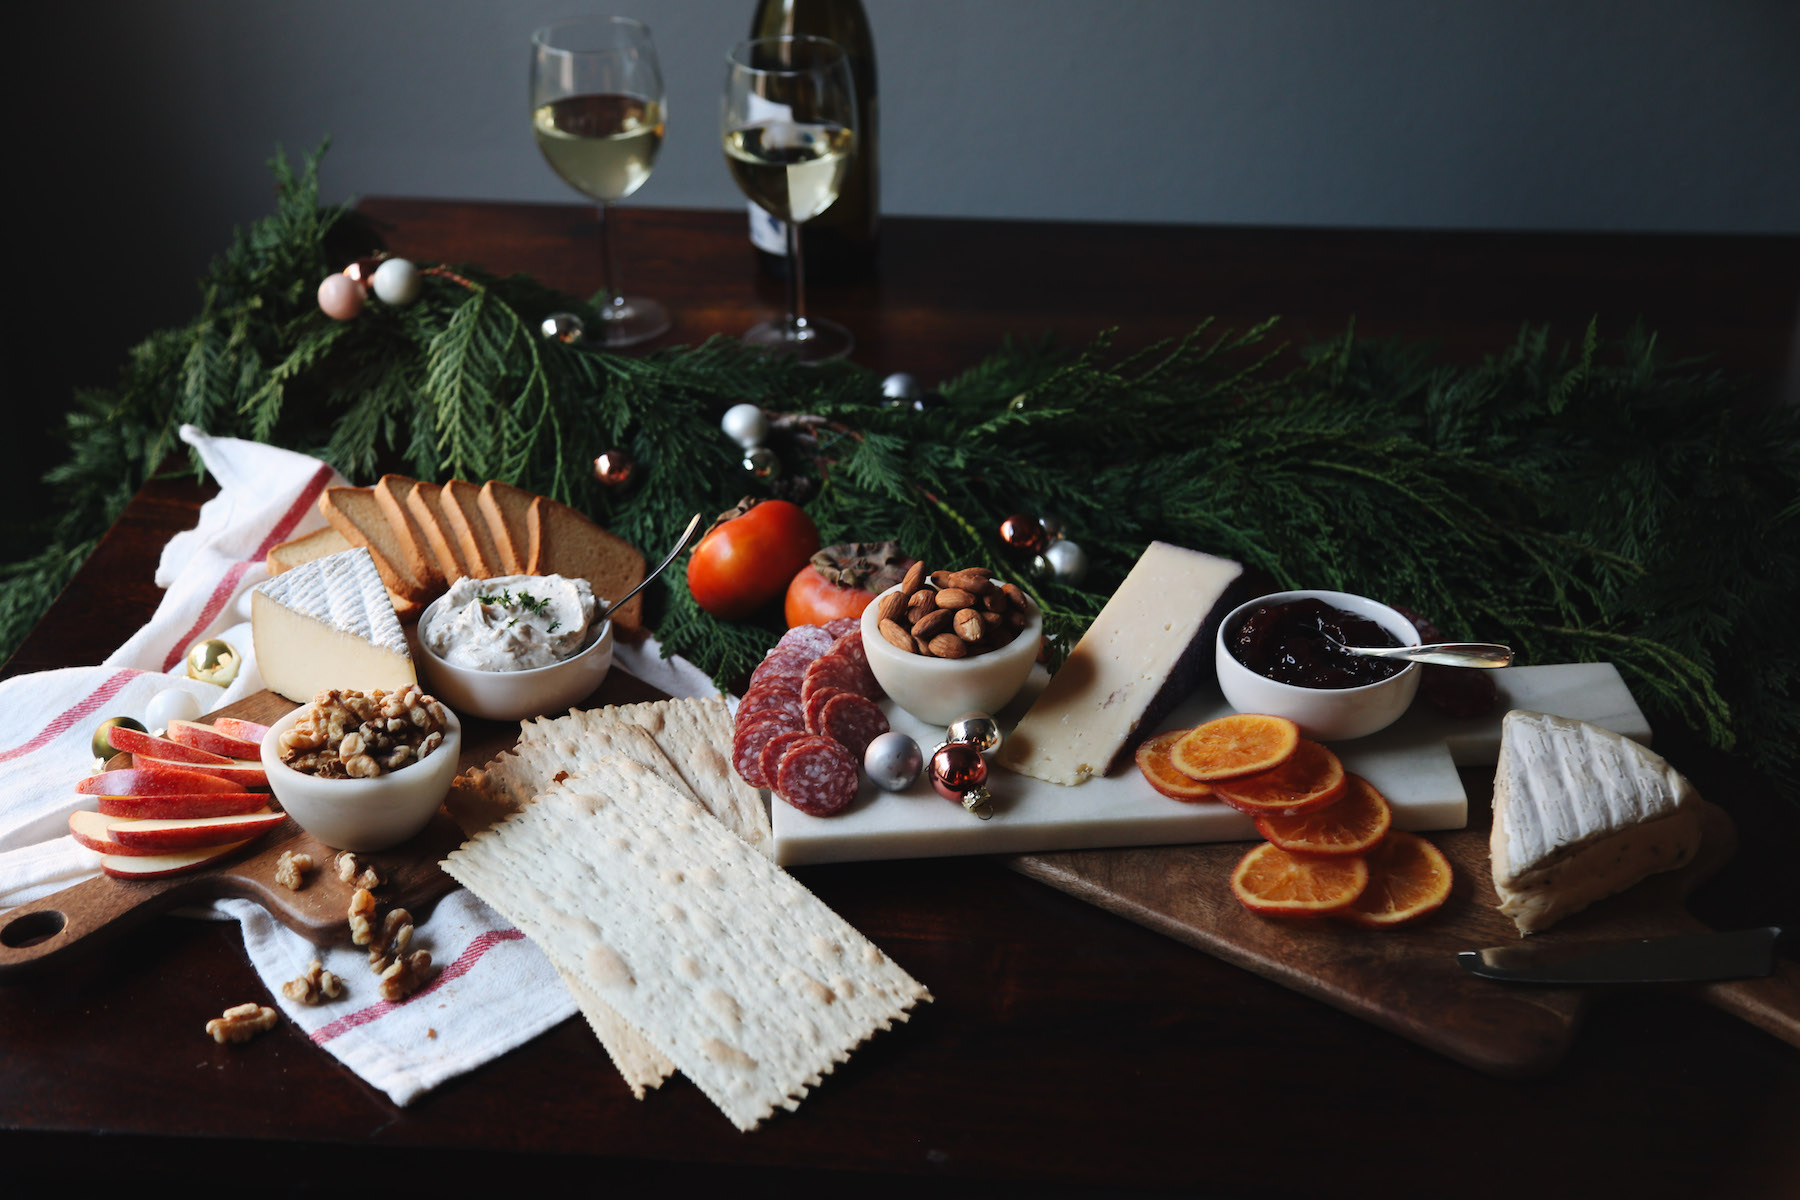 how to create a holiday cheeseboard for under 35 dollars6.jpg